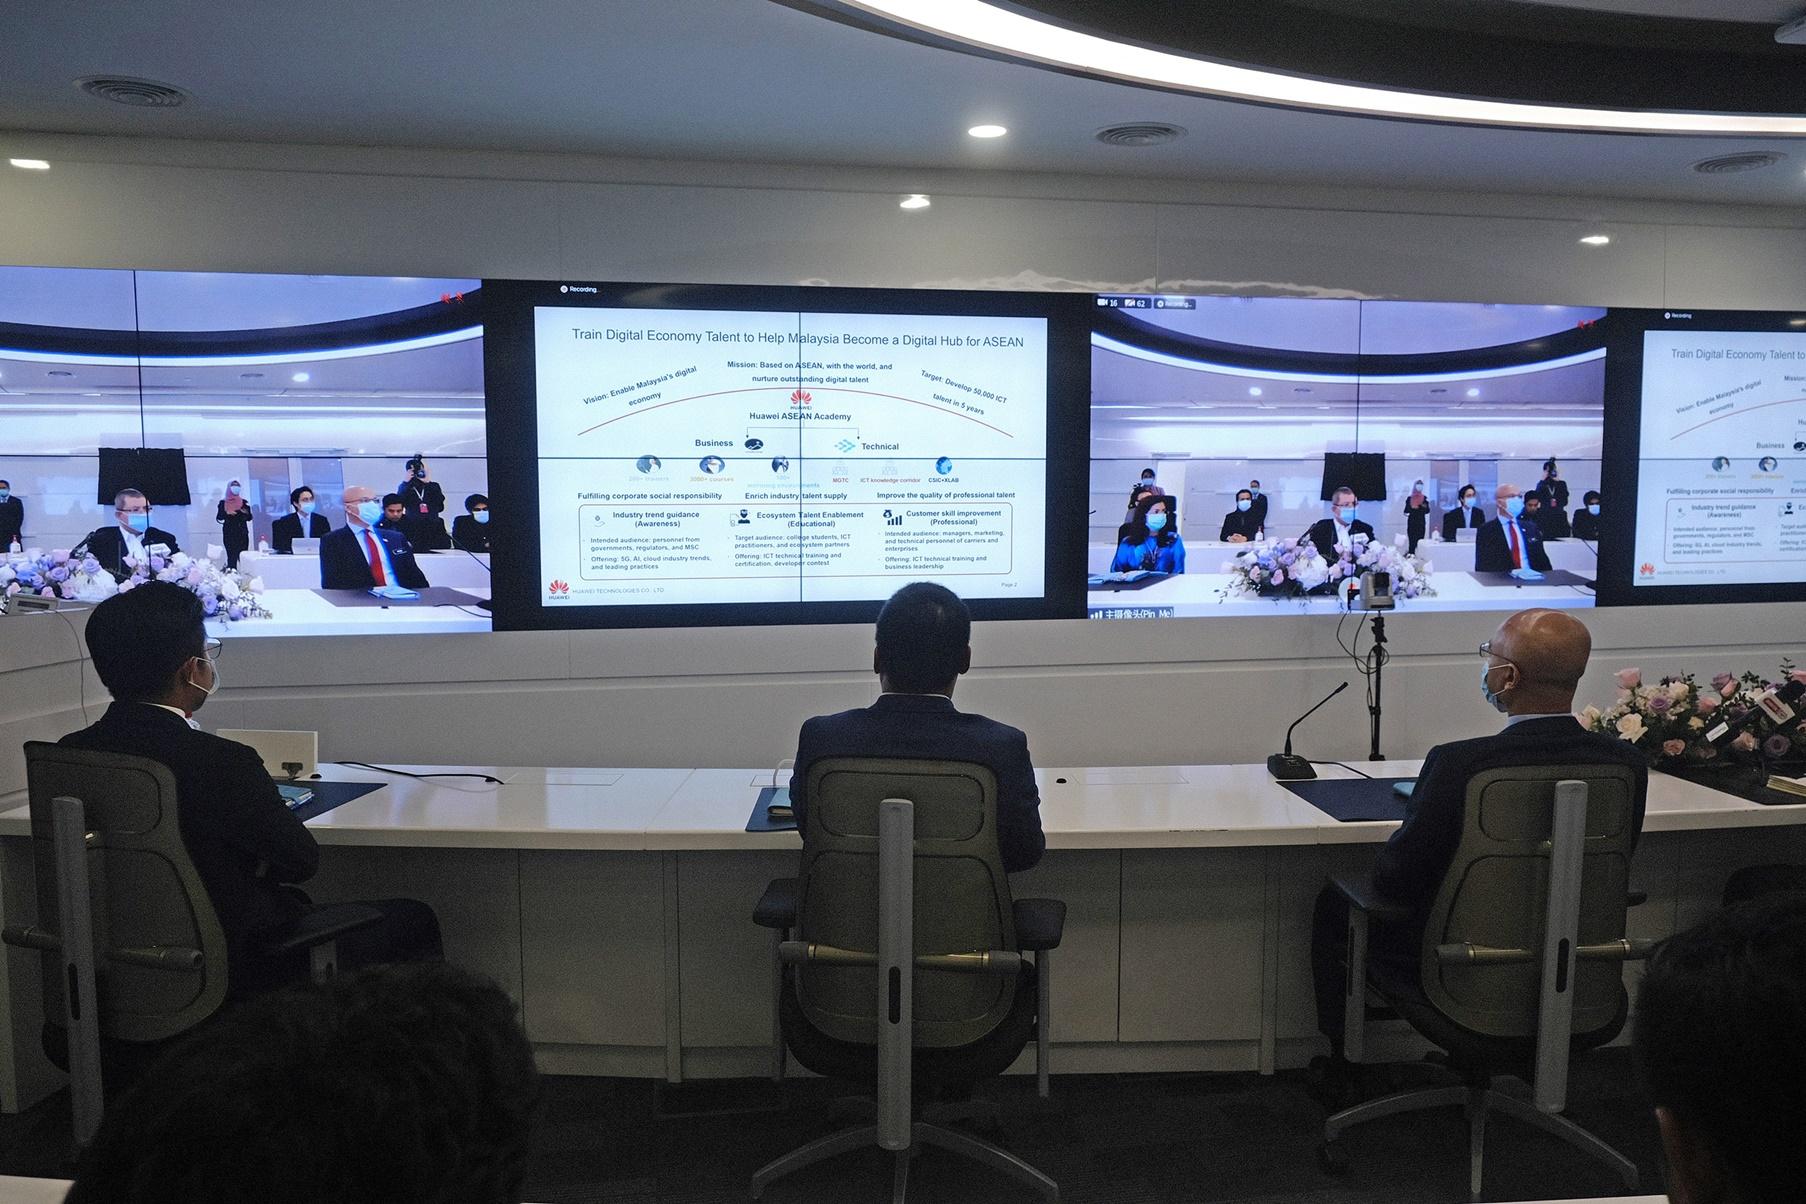 Huawei Launches ASEAN Academy to Empower Digital Talent and Nurture Digital Ecosystem (3)